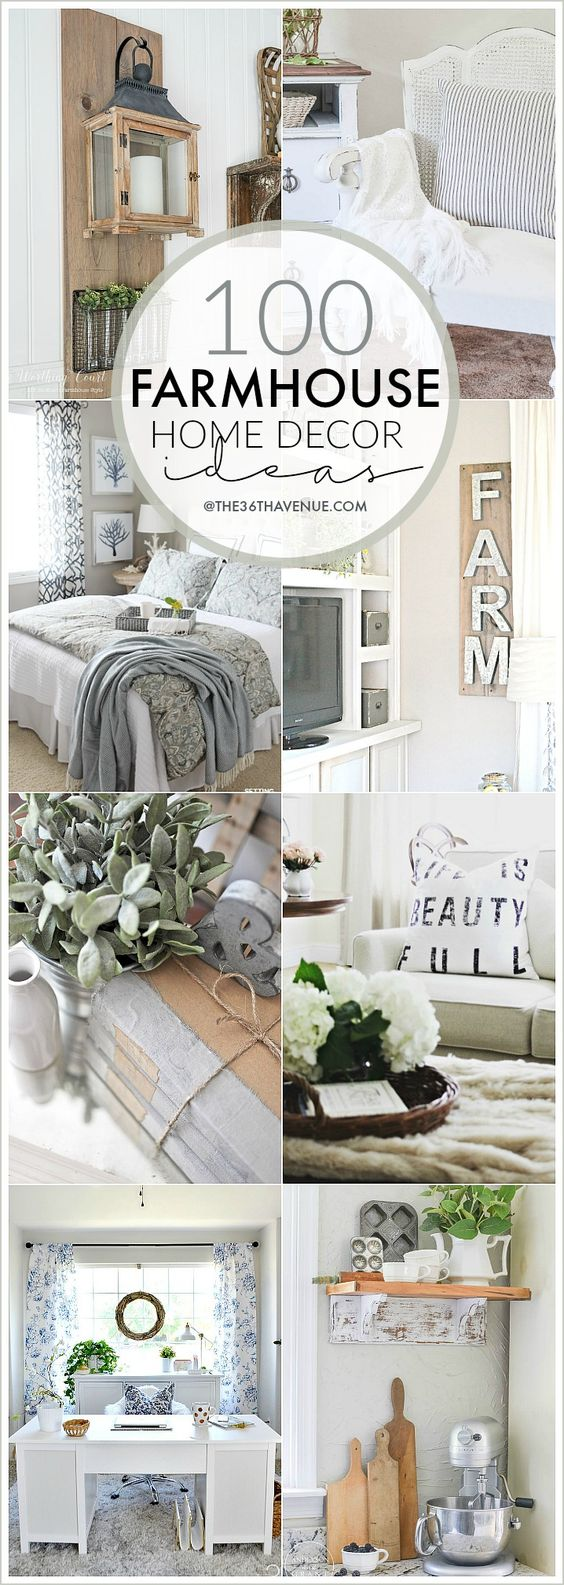 100 diy farmhouse home decor ideas decor ideas farmhouse decor and